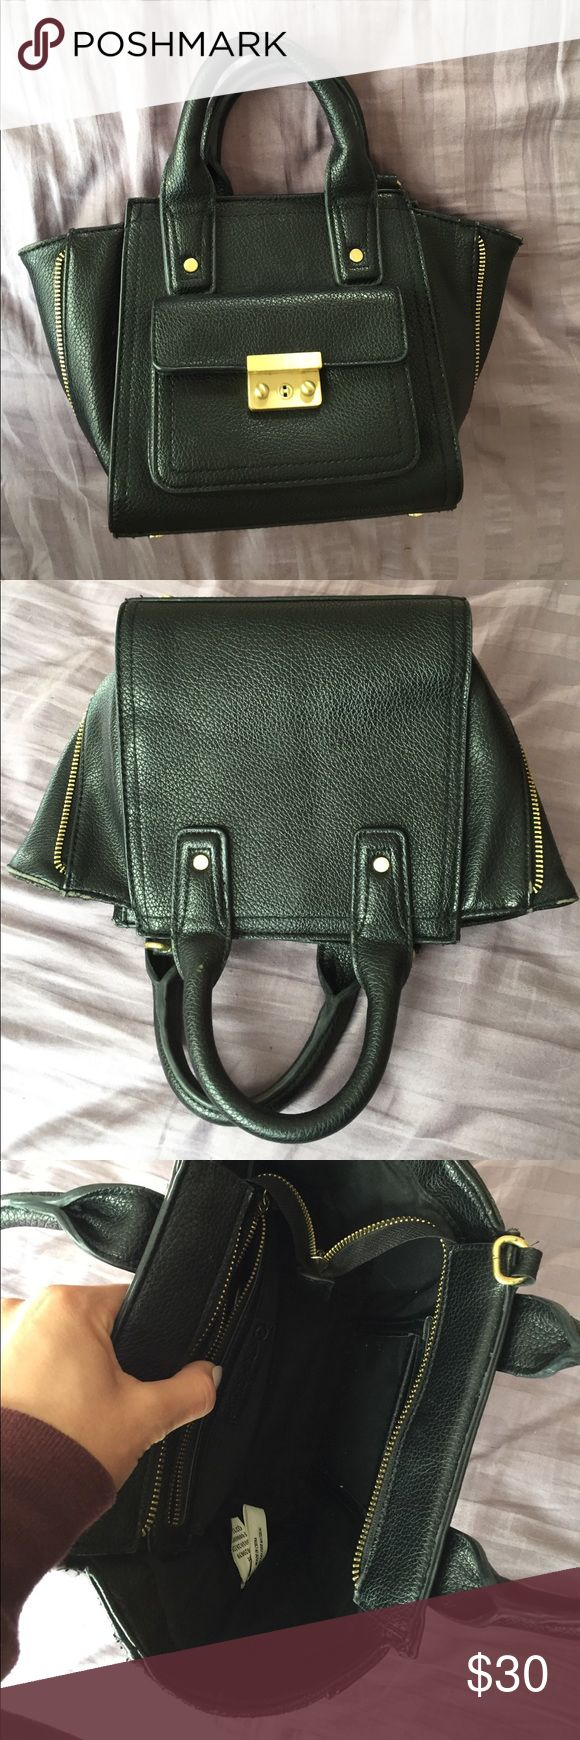 Vintage Black and Gold Cross body Purse Purchased at a Seattle thrift shop. Says target on the inside tag. Not real leather. No crossbody strap but has hooks to easily attatch one. Has some little strap that came with it in the pocket that I don't know what for. Really cute mini bag and made in good quality. Bags Crossbody Bags